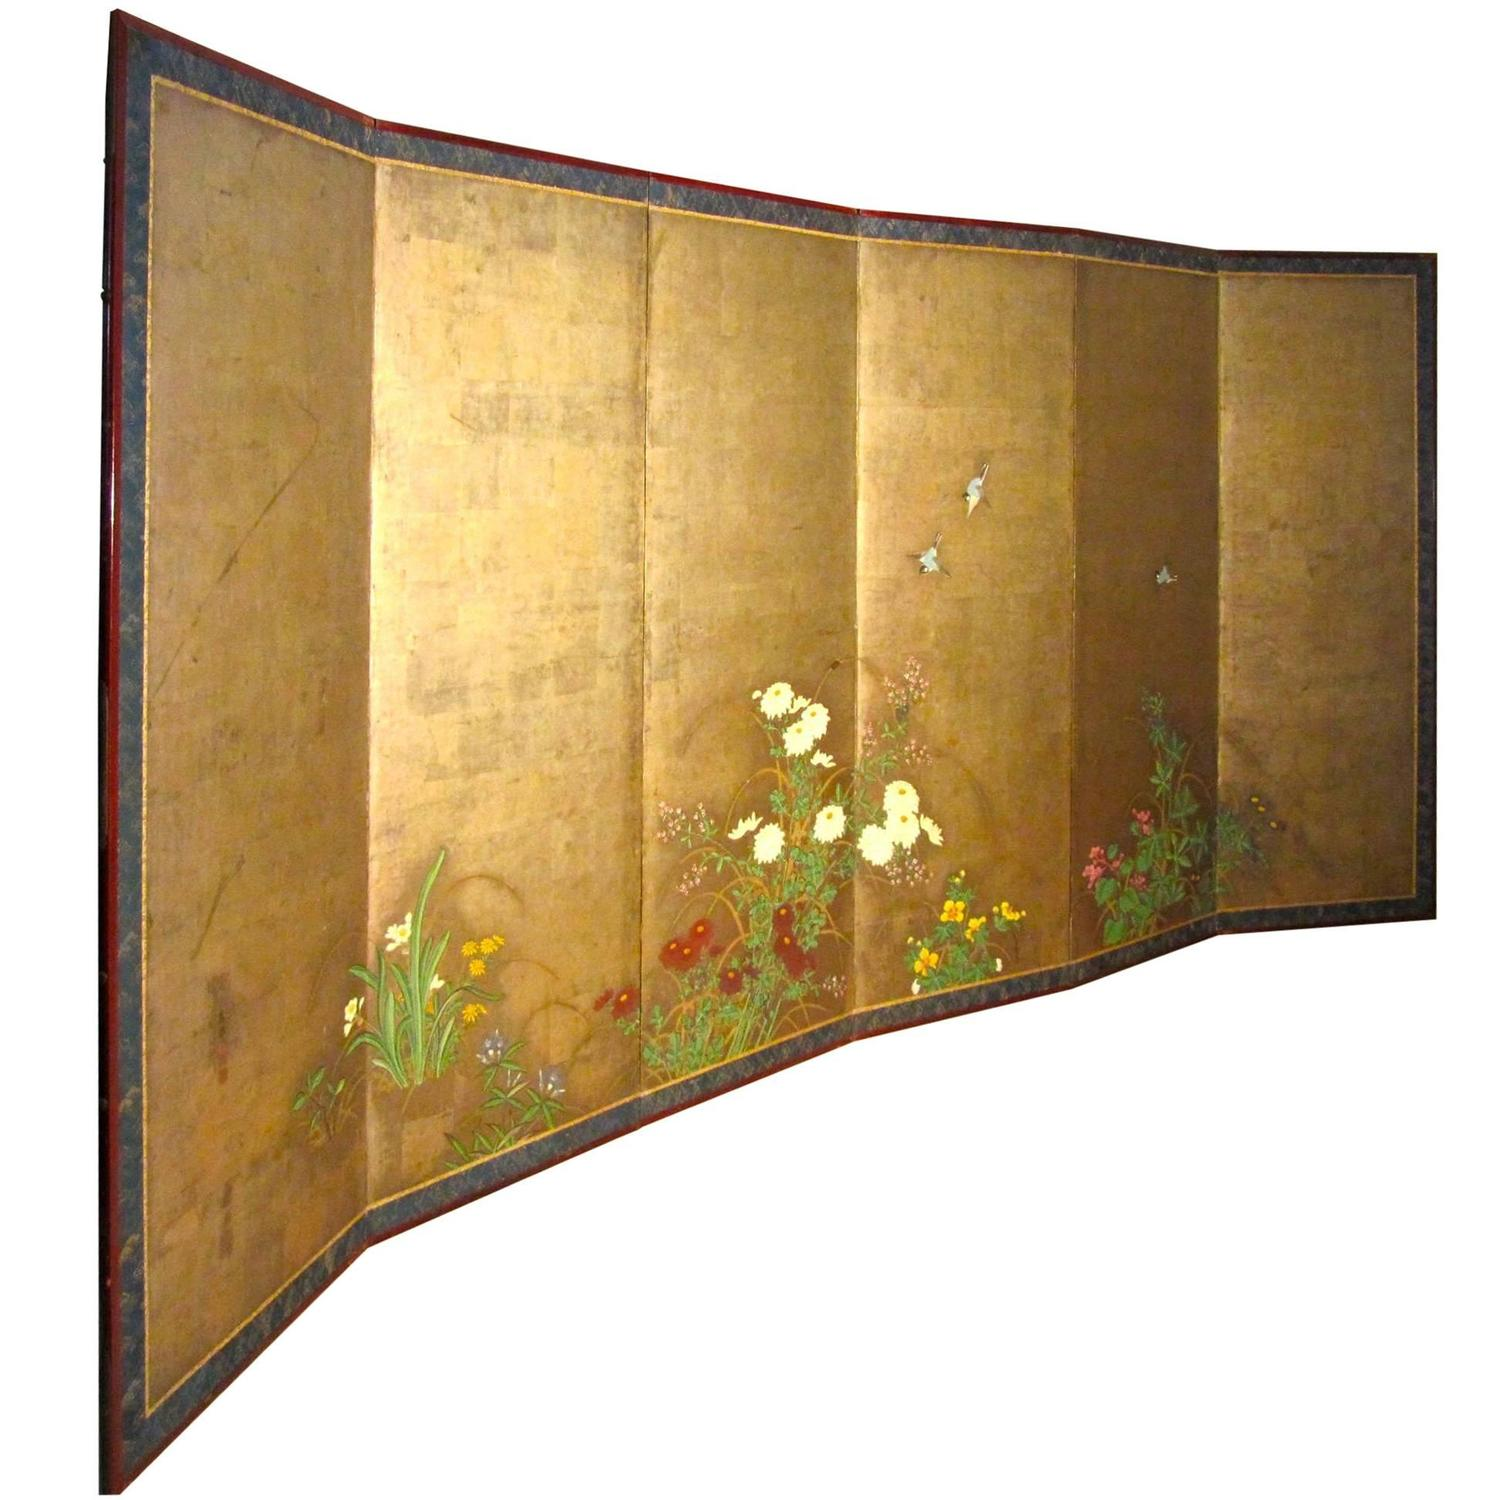 Antique japanese screens for sale - Pair Of 18th Century Gold Painted Japanese Six Fold Screens Byobu Edo Period